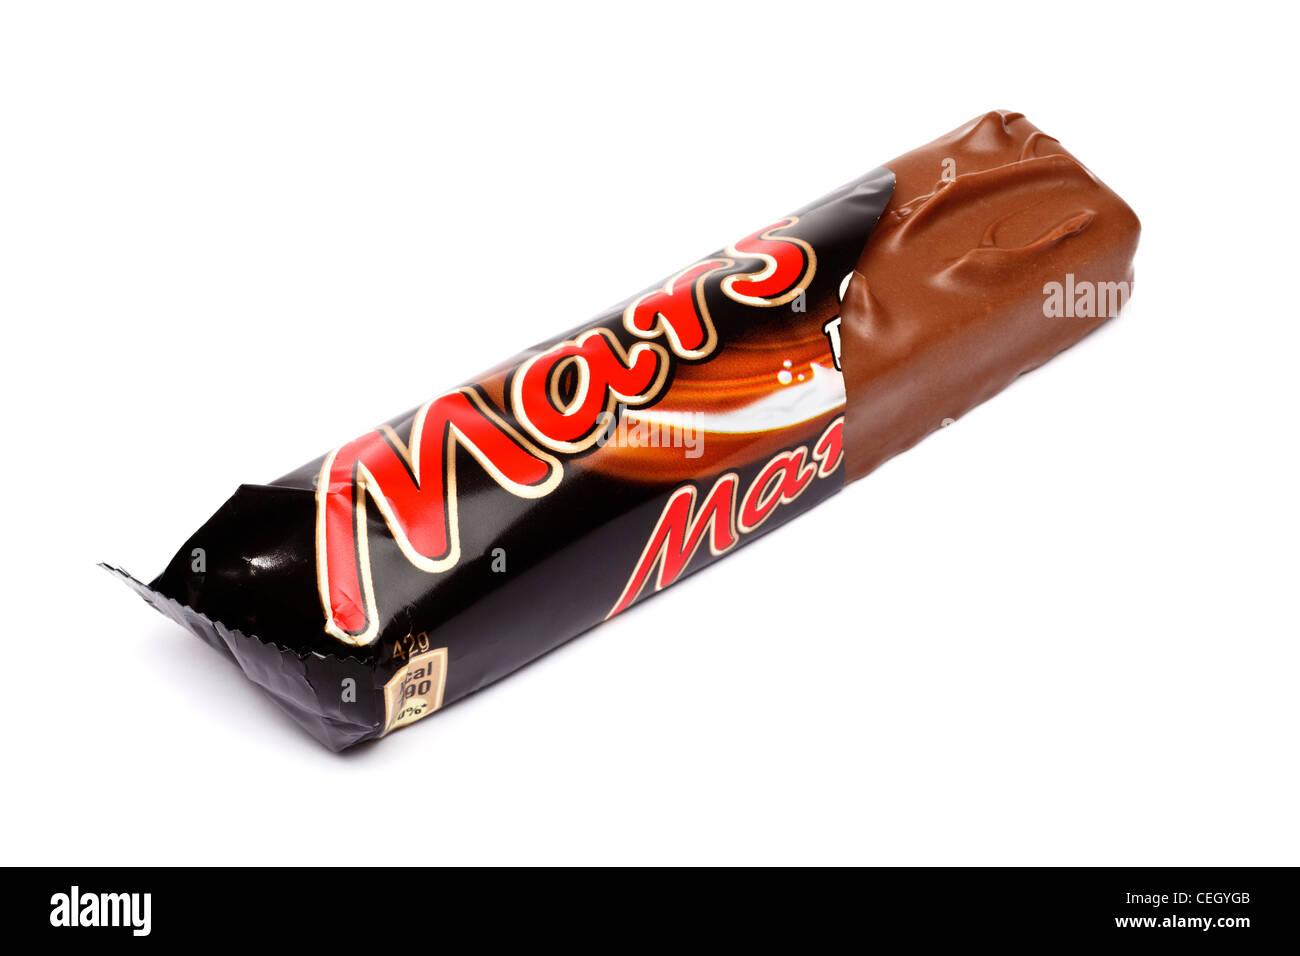 Mars chocolate bar wrapper stock photos mars chocolate bar wrapper mars bar in wrapper on white background stock image buycottarizona Gallery